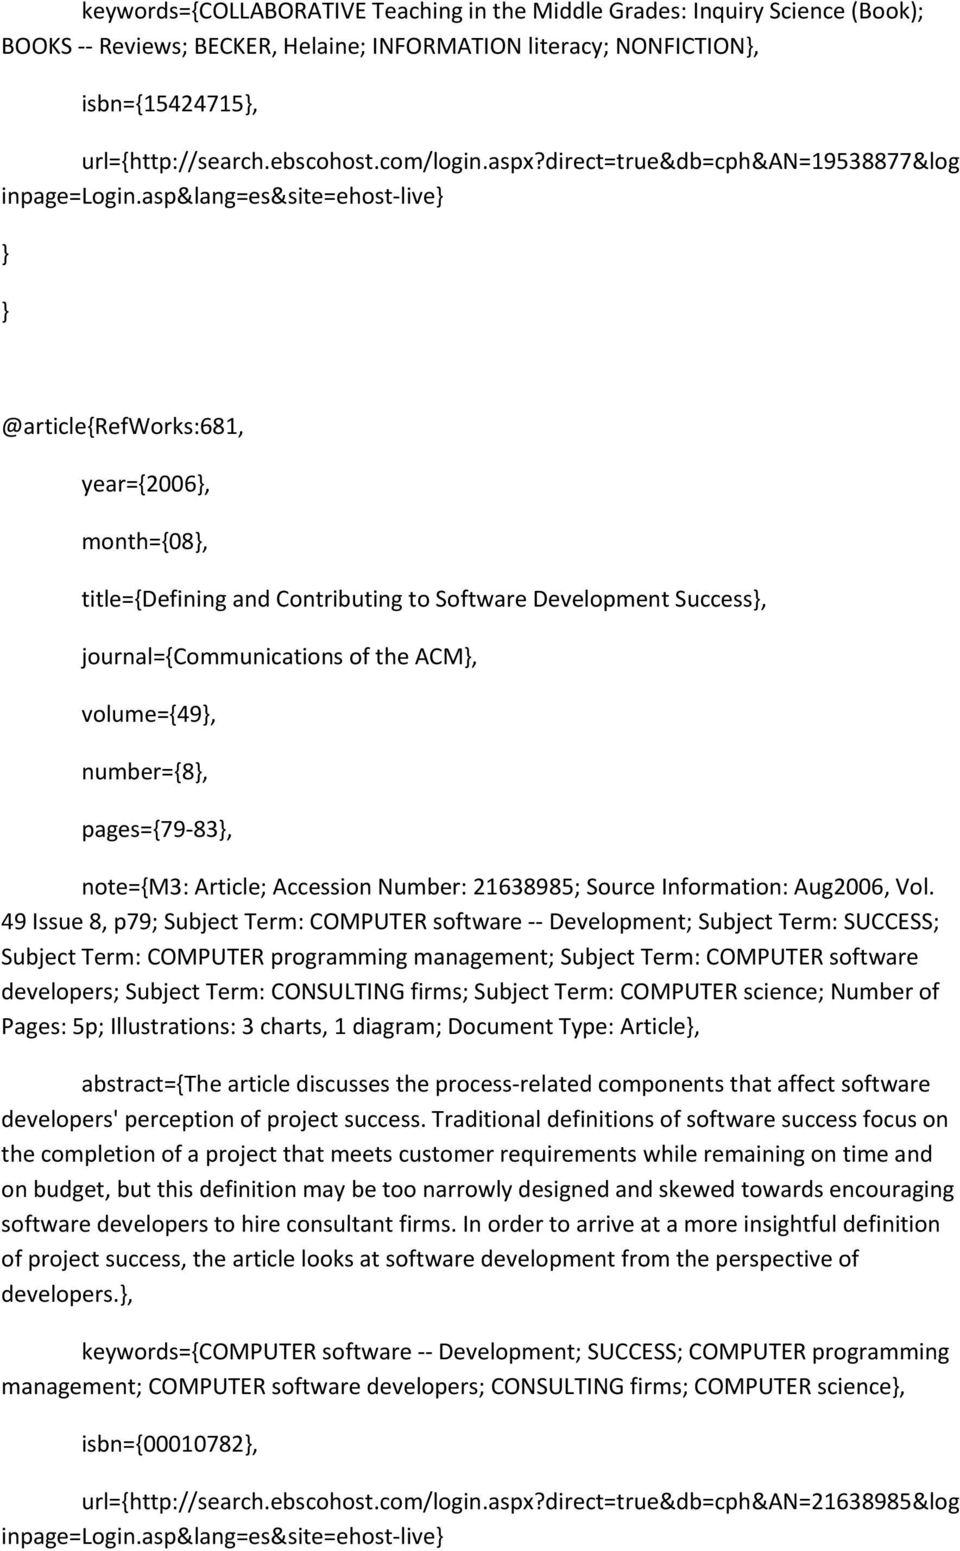 asp&lang=es&site=ehost-live @article{refworks:681, year={2006, month={08, title={defining and Contributing to Software Development Success, journal={communications of the ACM, volume={49, number={8,